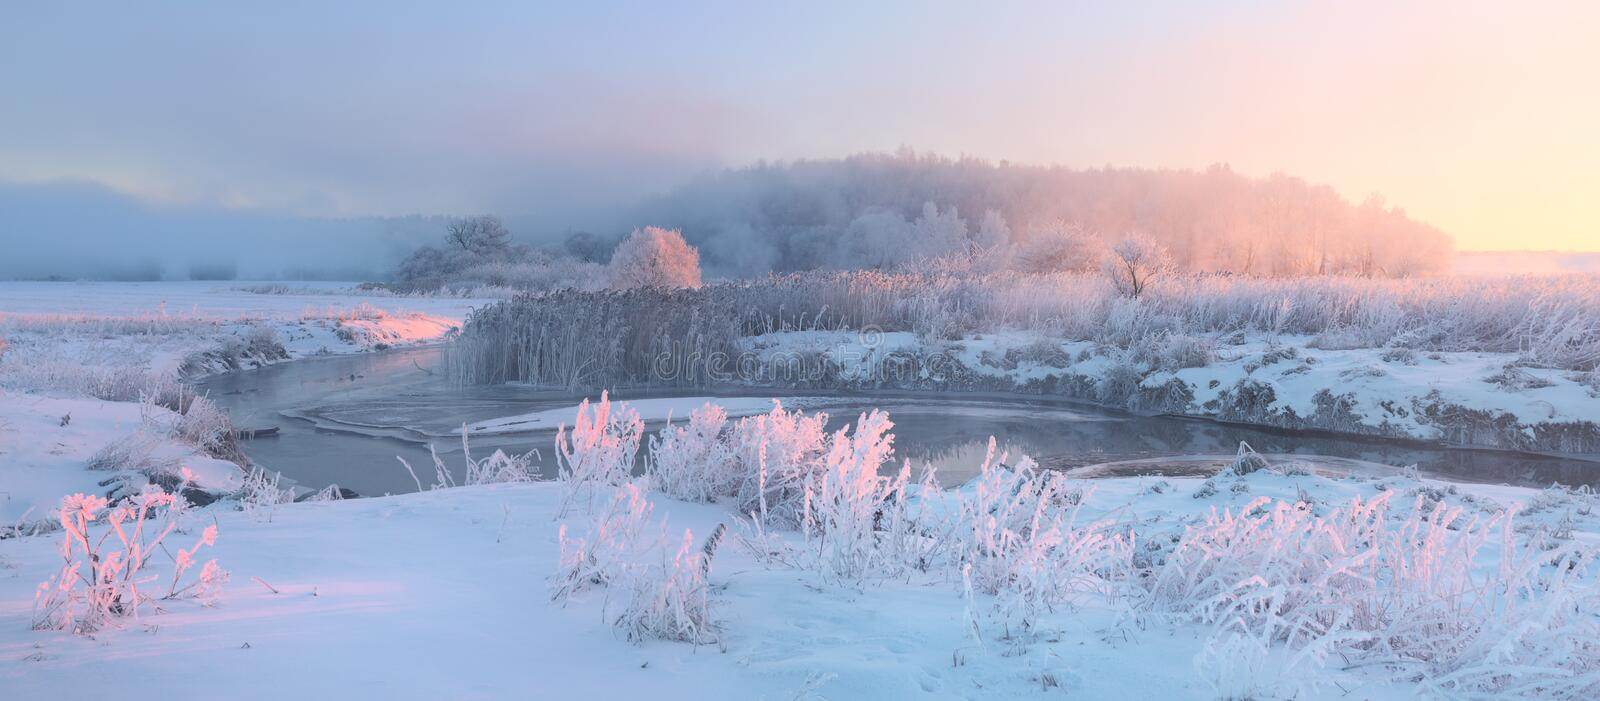 Snowy meadow and grass with hoarfrost illuminaed by rising sun. Beautiful winter landscape. Foggy winter morning stock image